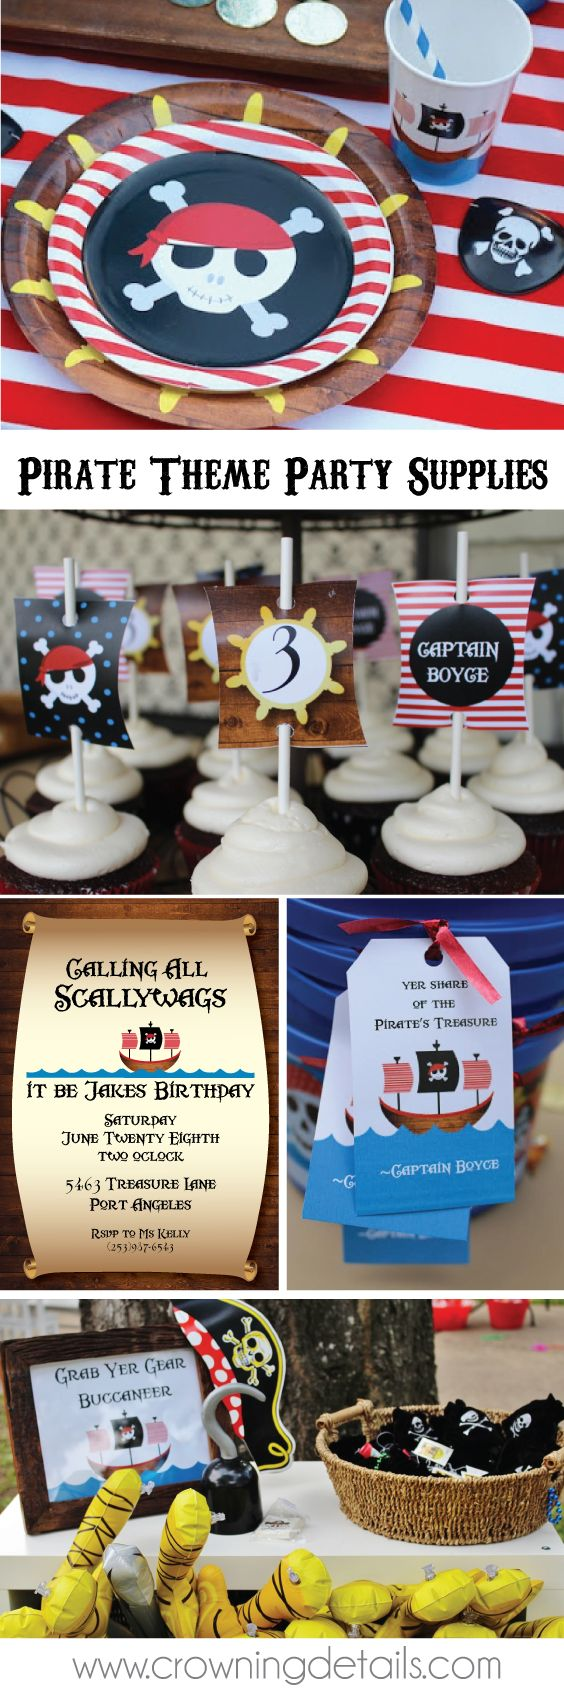 Pirate party supplies for your pirate birthday party! Shop the collection in our online store.  pirate invitations & pirate plates